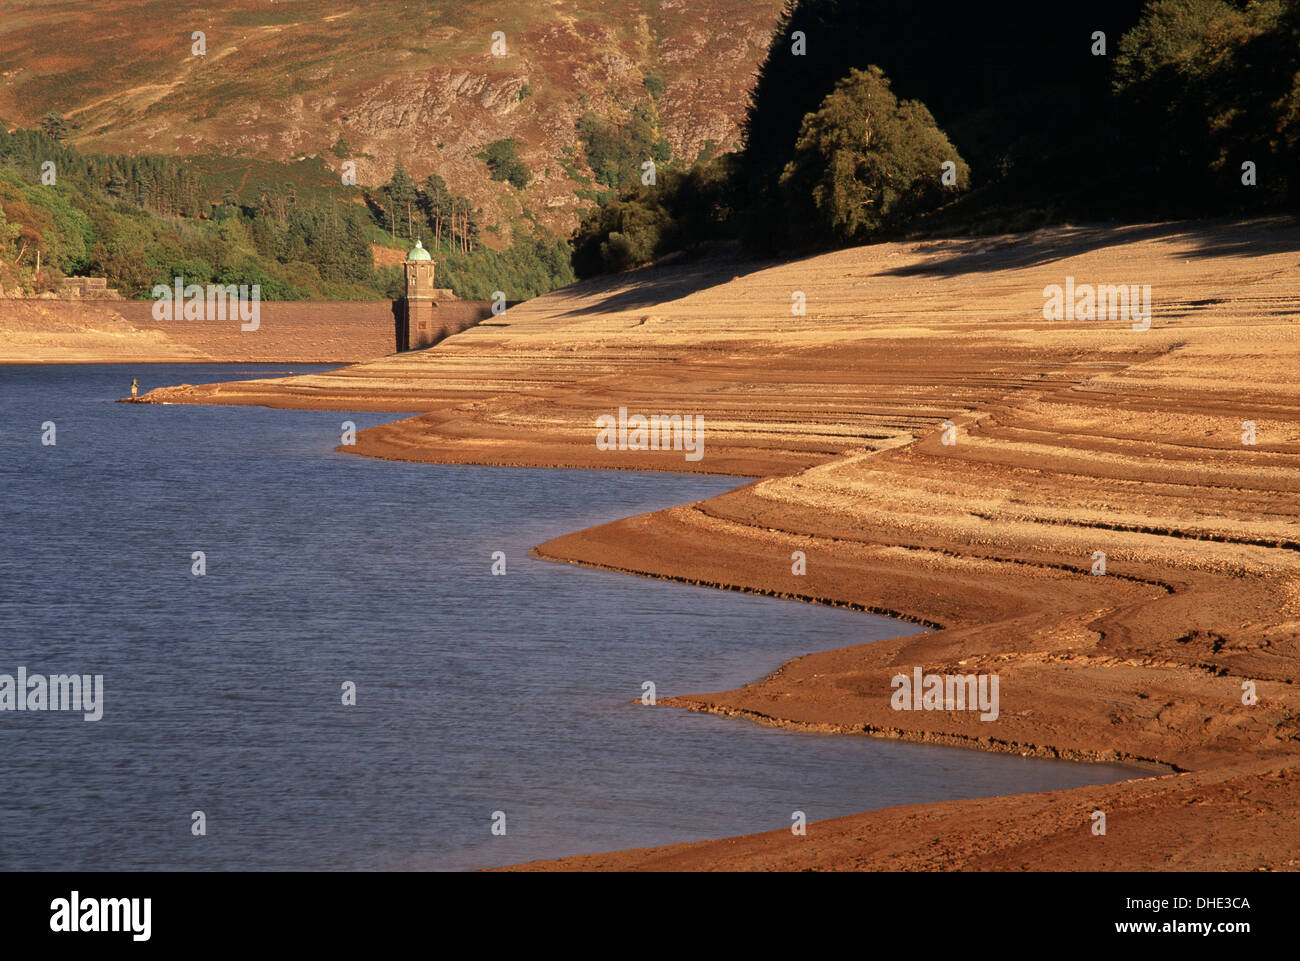 A fisherman stands on the edge of PenyGarreg Reservoir, Elan Valley during a severe drought. Stock Photo